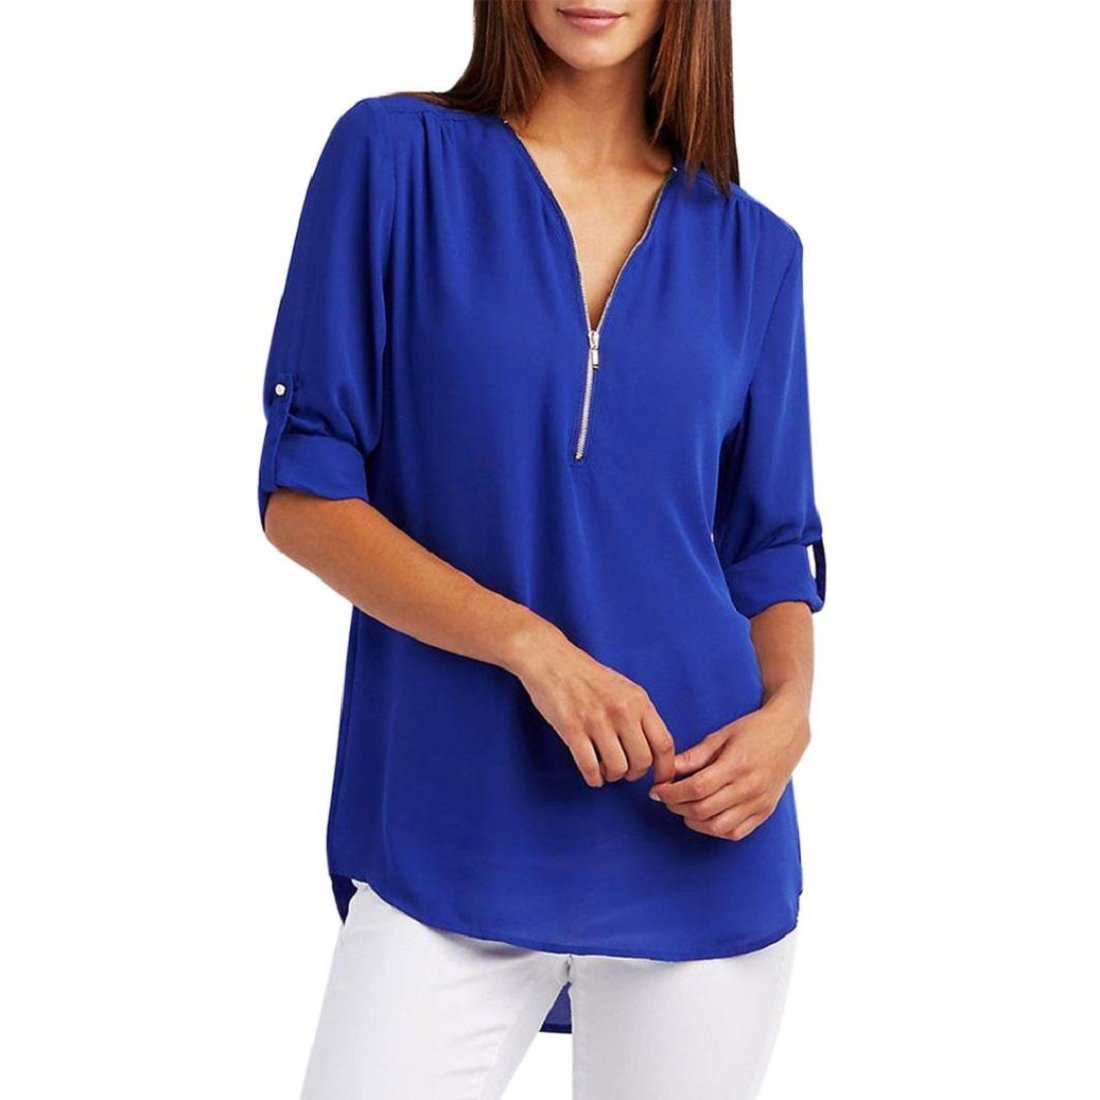 GONKOMA Clearance Fashion Women V-Neck Blouse Casual Solid Color Chiffon Loose Top Long Sleeve Blouse T-Shirt Blue) XWJ520